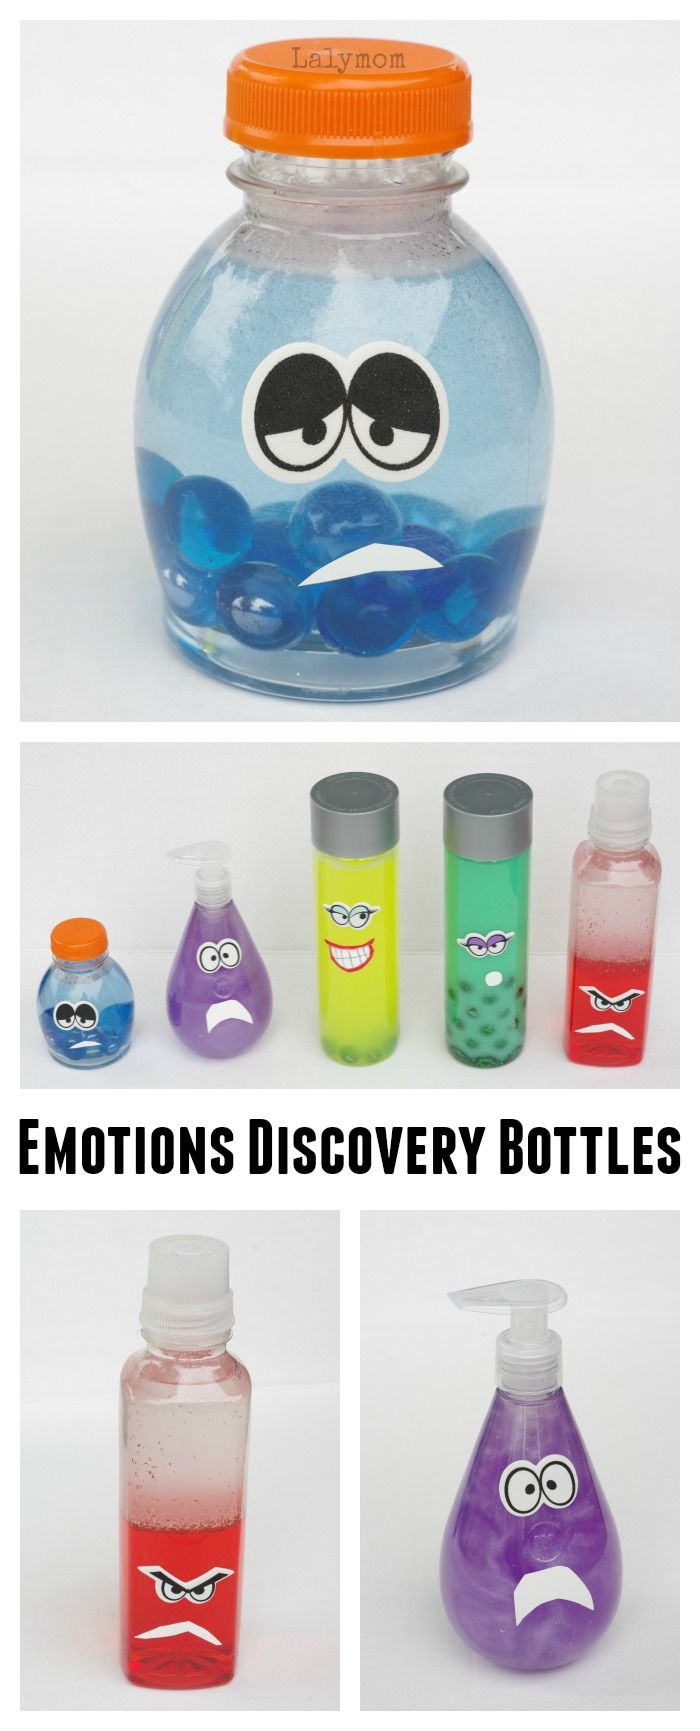 Botellas Emociones de Descubrimiento Inspired By Disney Inside Out - LalyMom